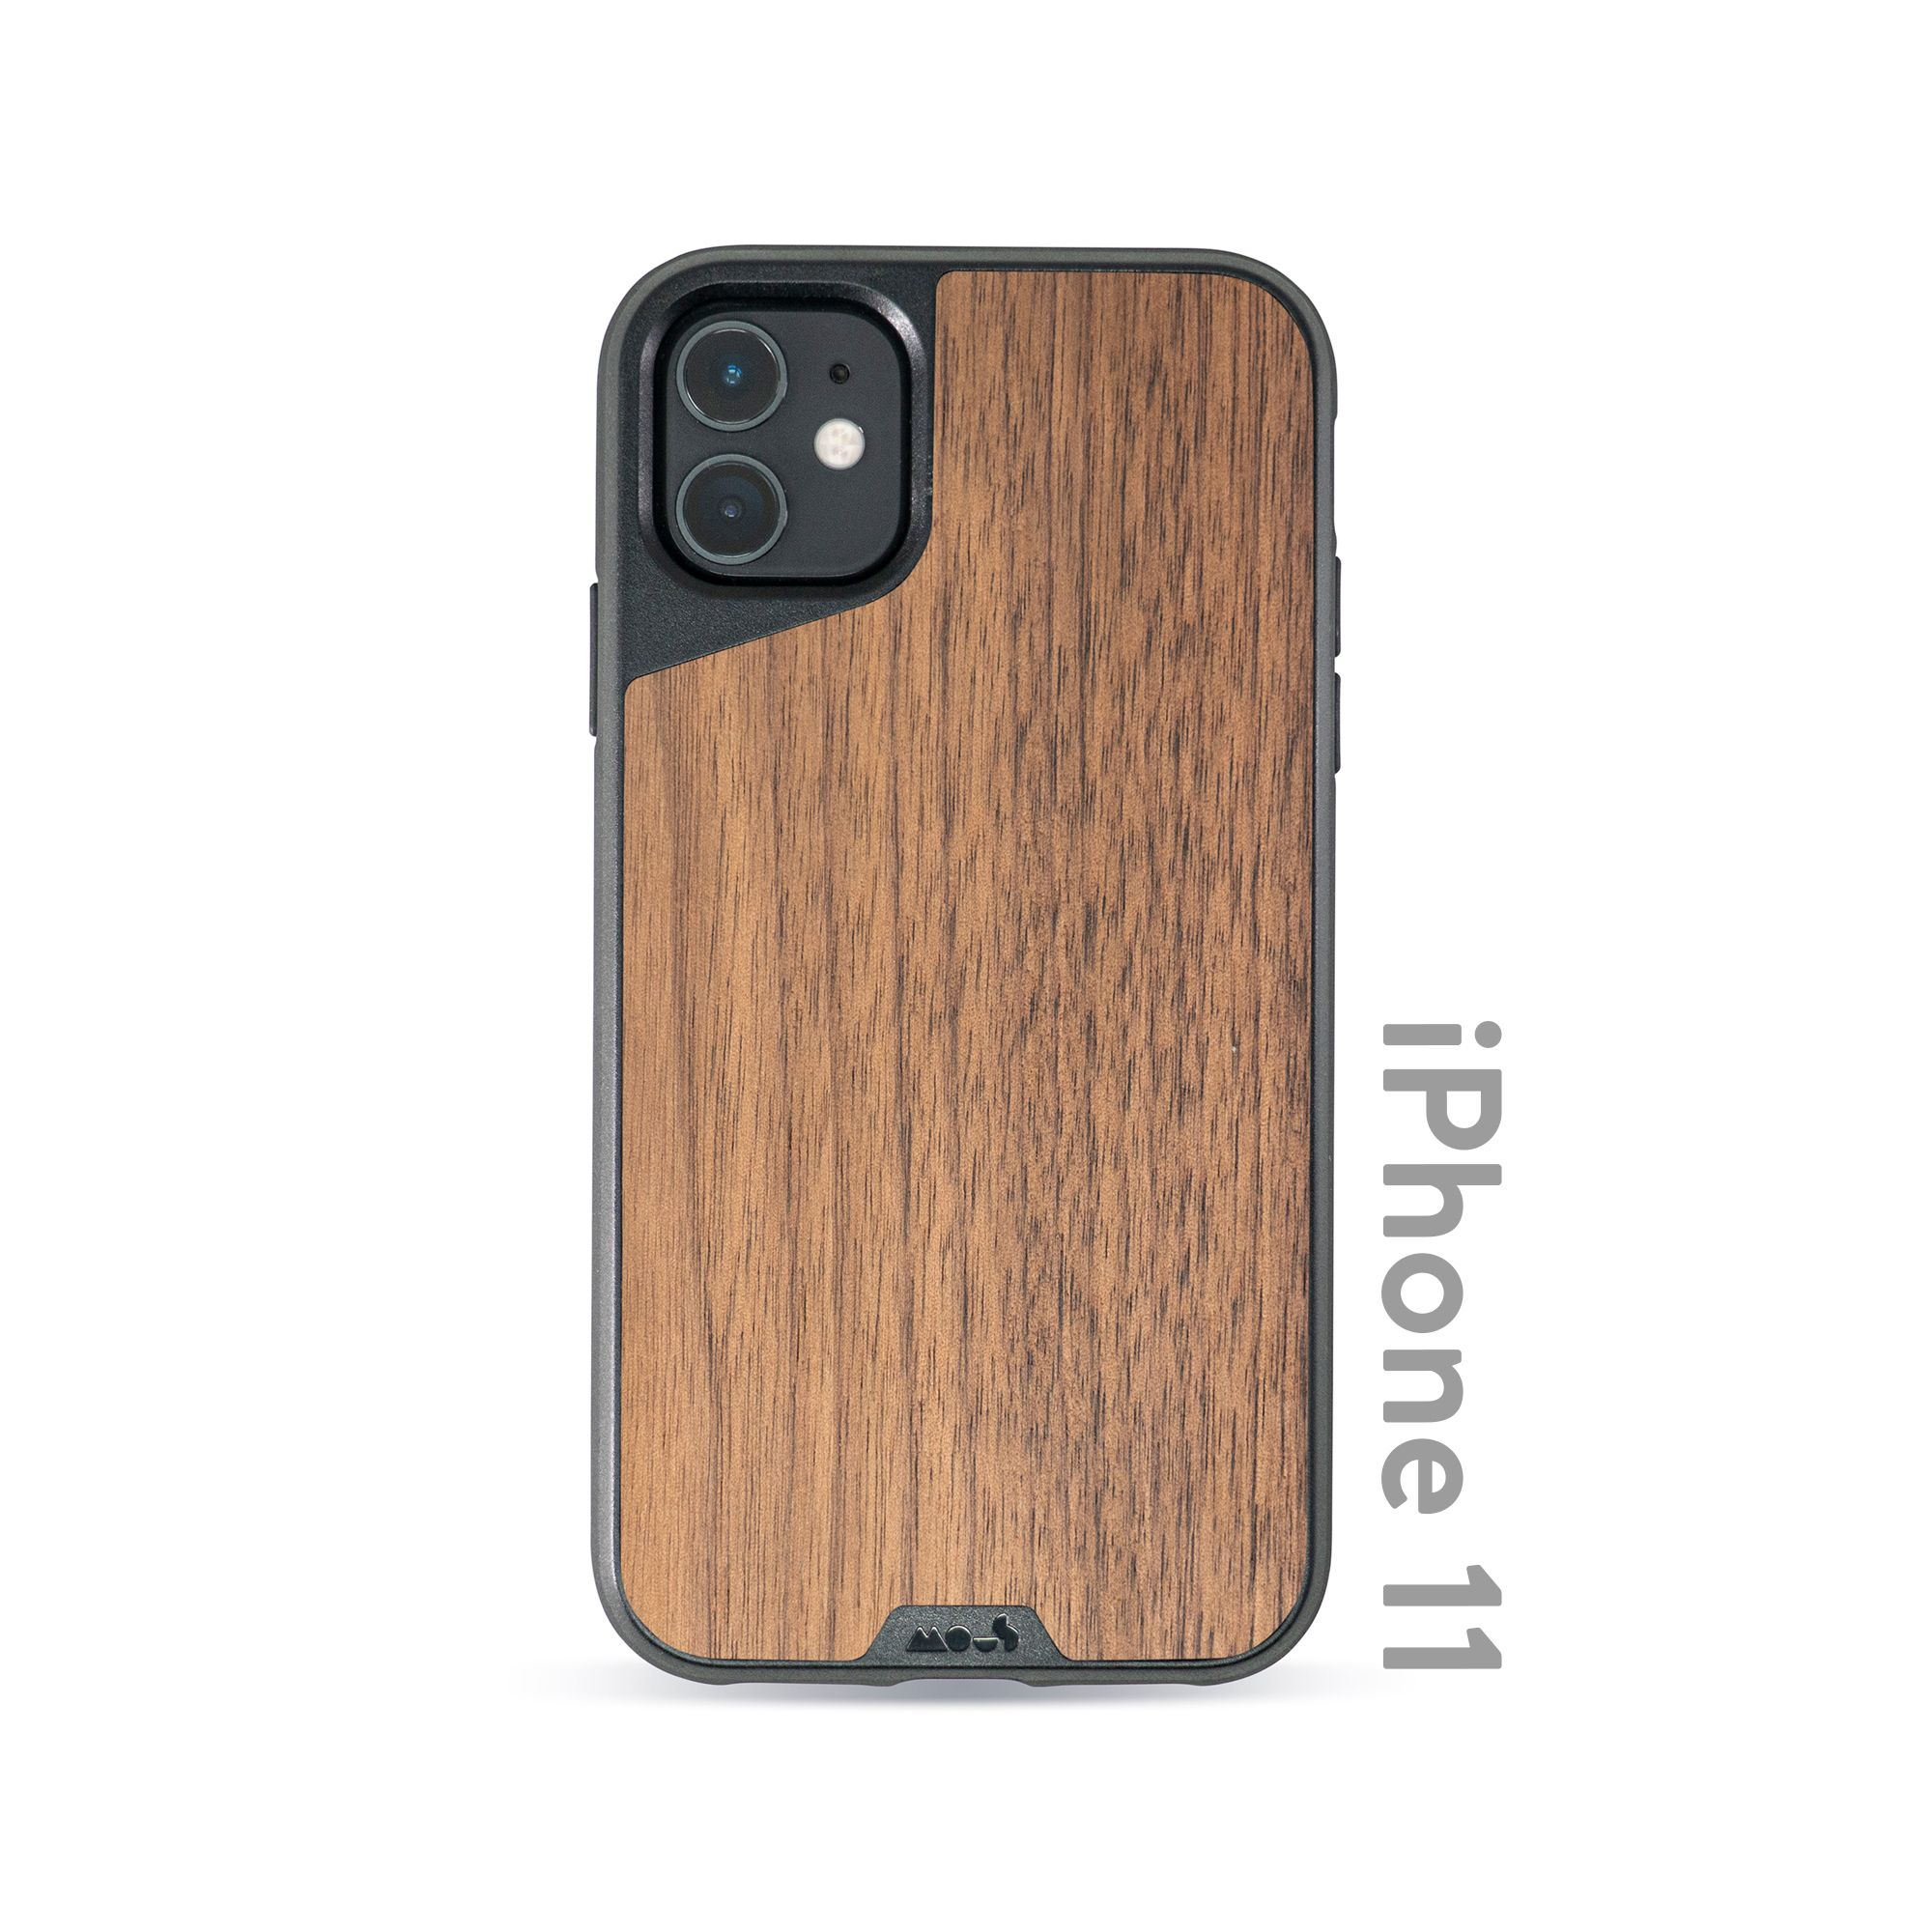 Mous - Protective Case for iPhone 11 - Limitless 3.0 - Walnut - No Screen Protector